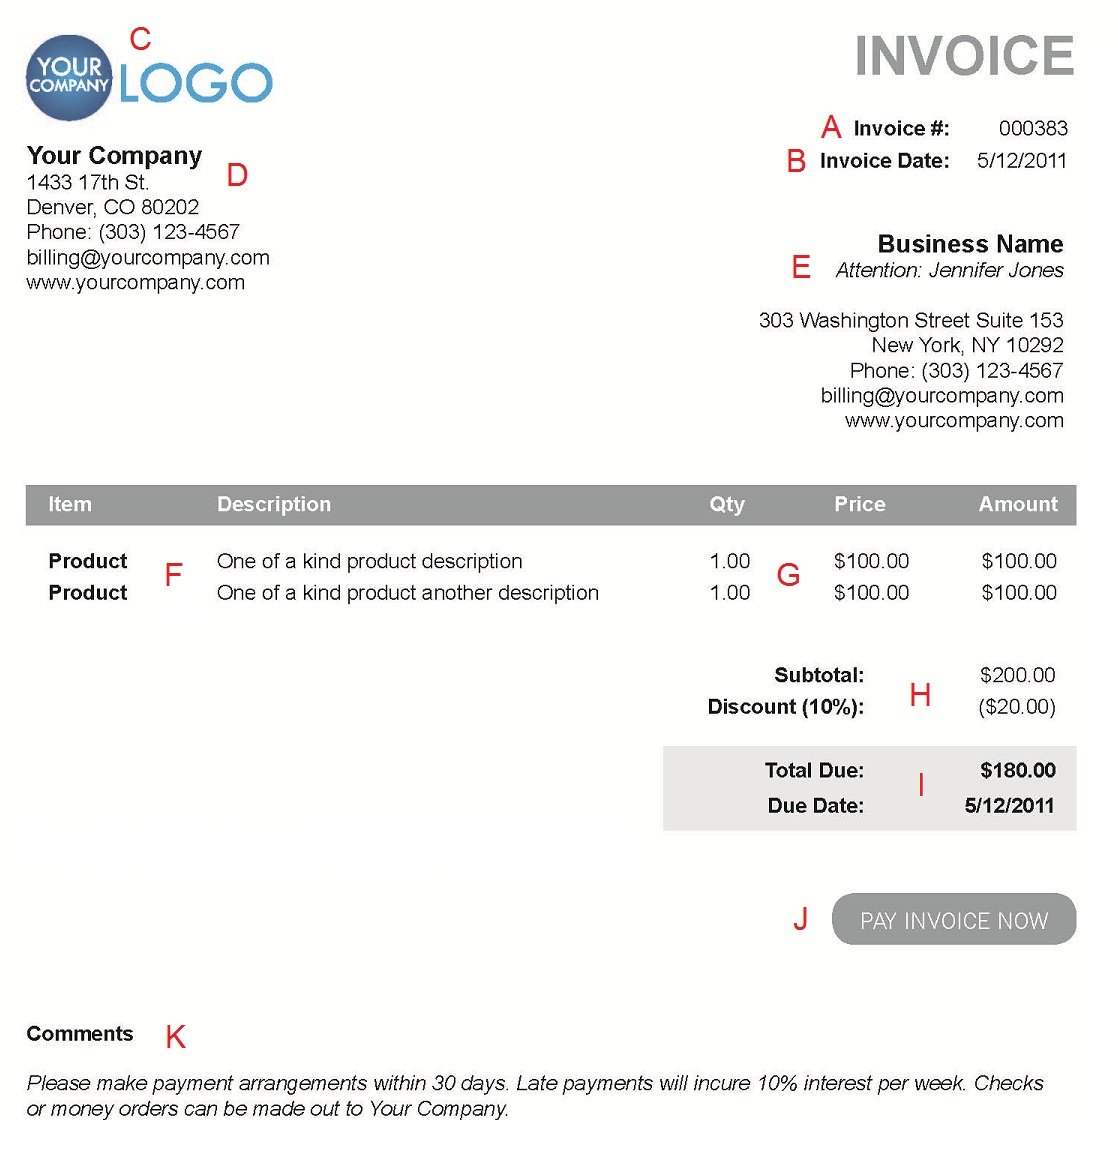 Weverducreus  Wonderful The  Different Sections Of An Electronic Payment Invoice With Exquisite A  With Agreeable Free Easy Invoice Template Also Back To Invoice Gap Insurance In Addition Invoice Receipt Template Free And Dealer Invoice Price For Cars As Well As Fedex Freight Commercial Invoice Additionally Invoices Template Free From Paysimplecom With Weverducreus  Exquisite The  Different Sections Of An Electronic Payment Invoice With Agreeable A  And Wonderful Free Easy Invoice Template Also Back To Invoice Gap Insurance In Addition Invoice Receipt Template Free From Paysimplecom